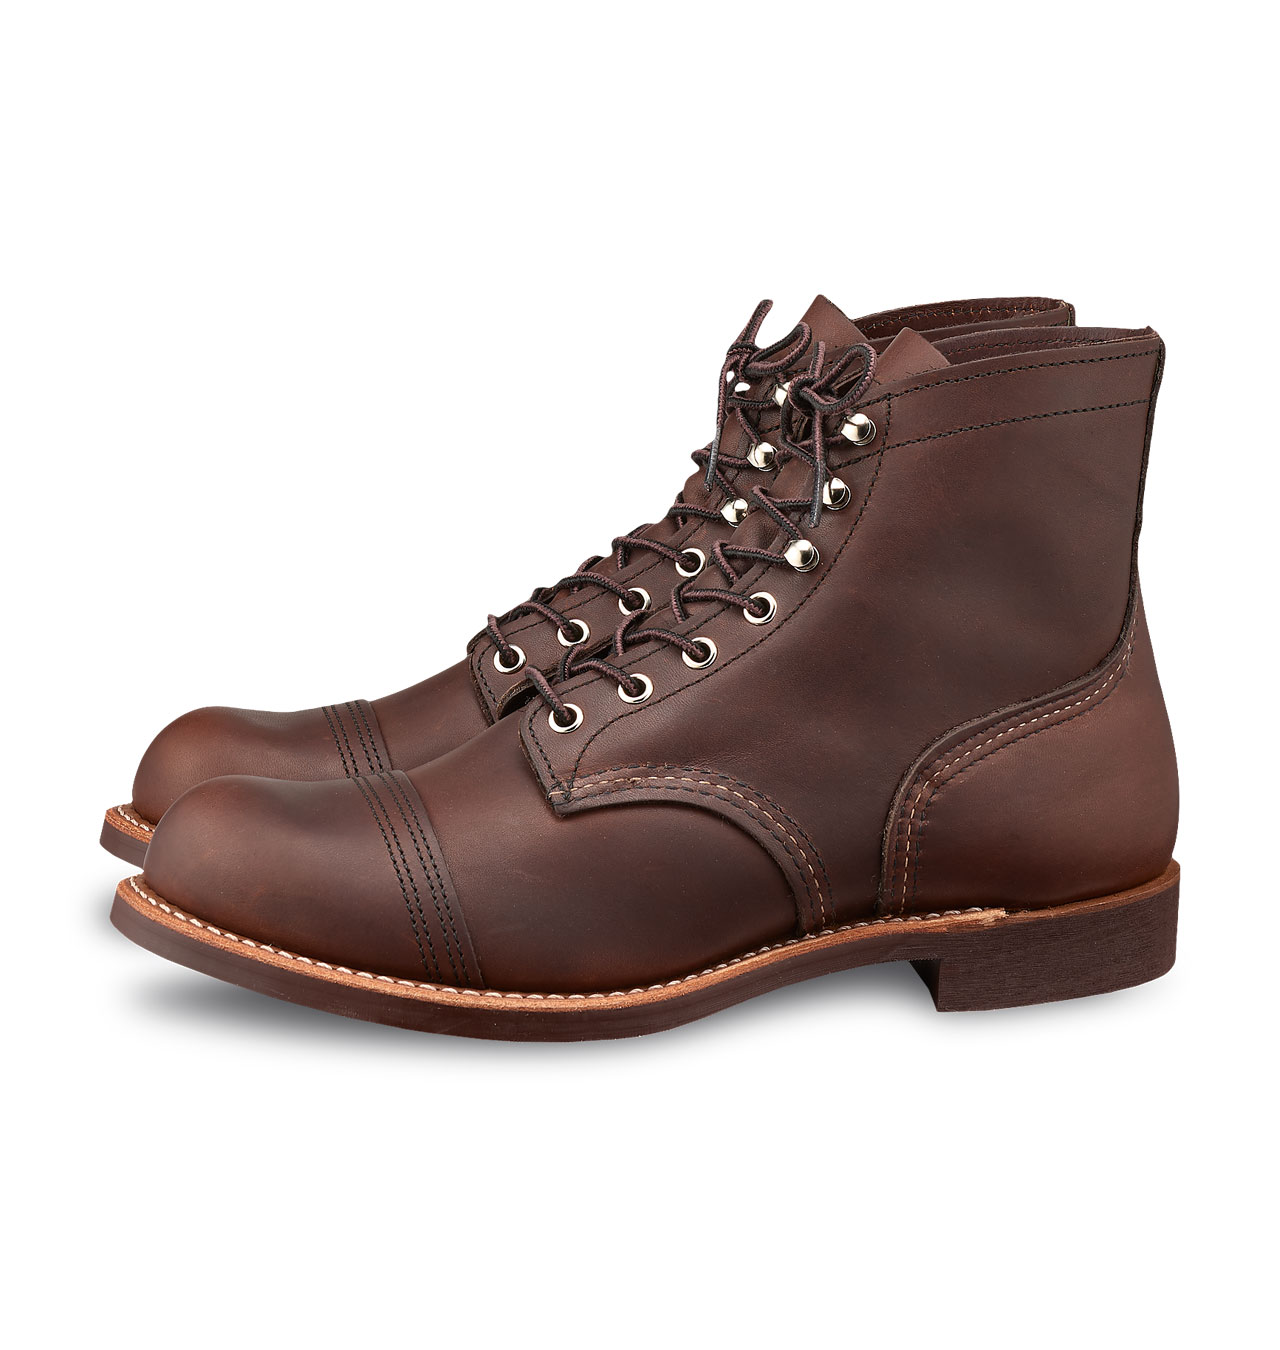 927180cad5 Red Wing Shoes 8111 Iron Ranger - Amber Harness